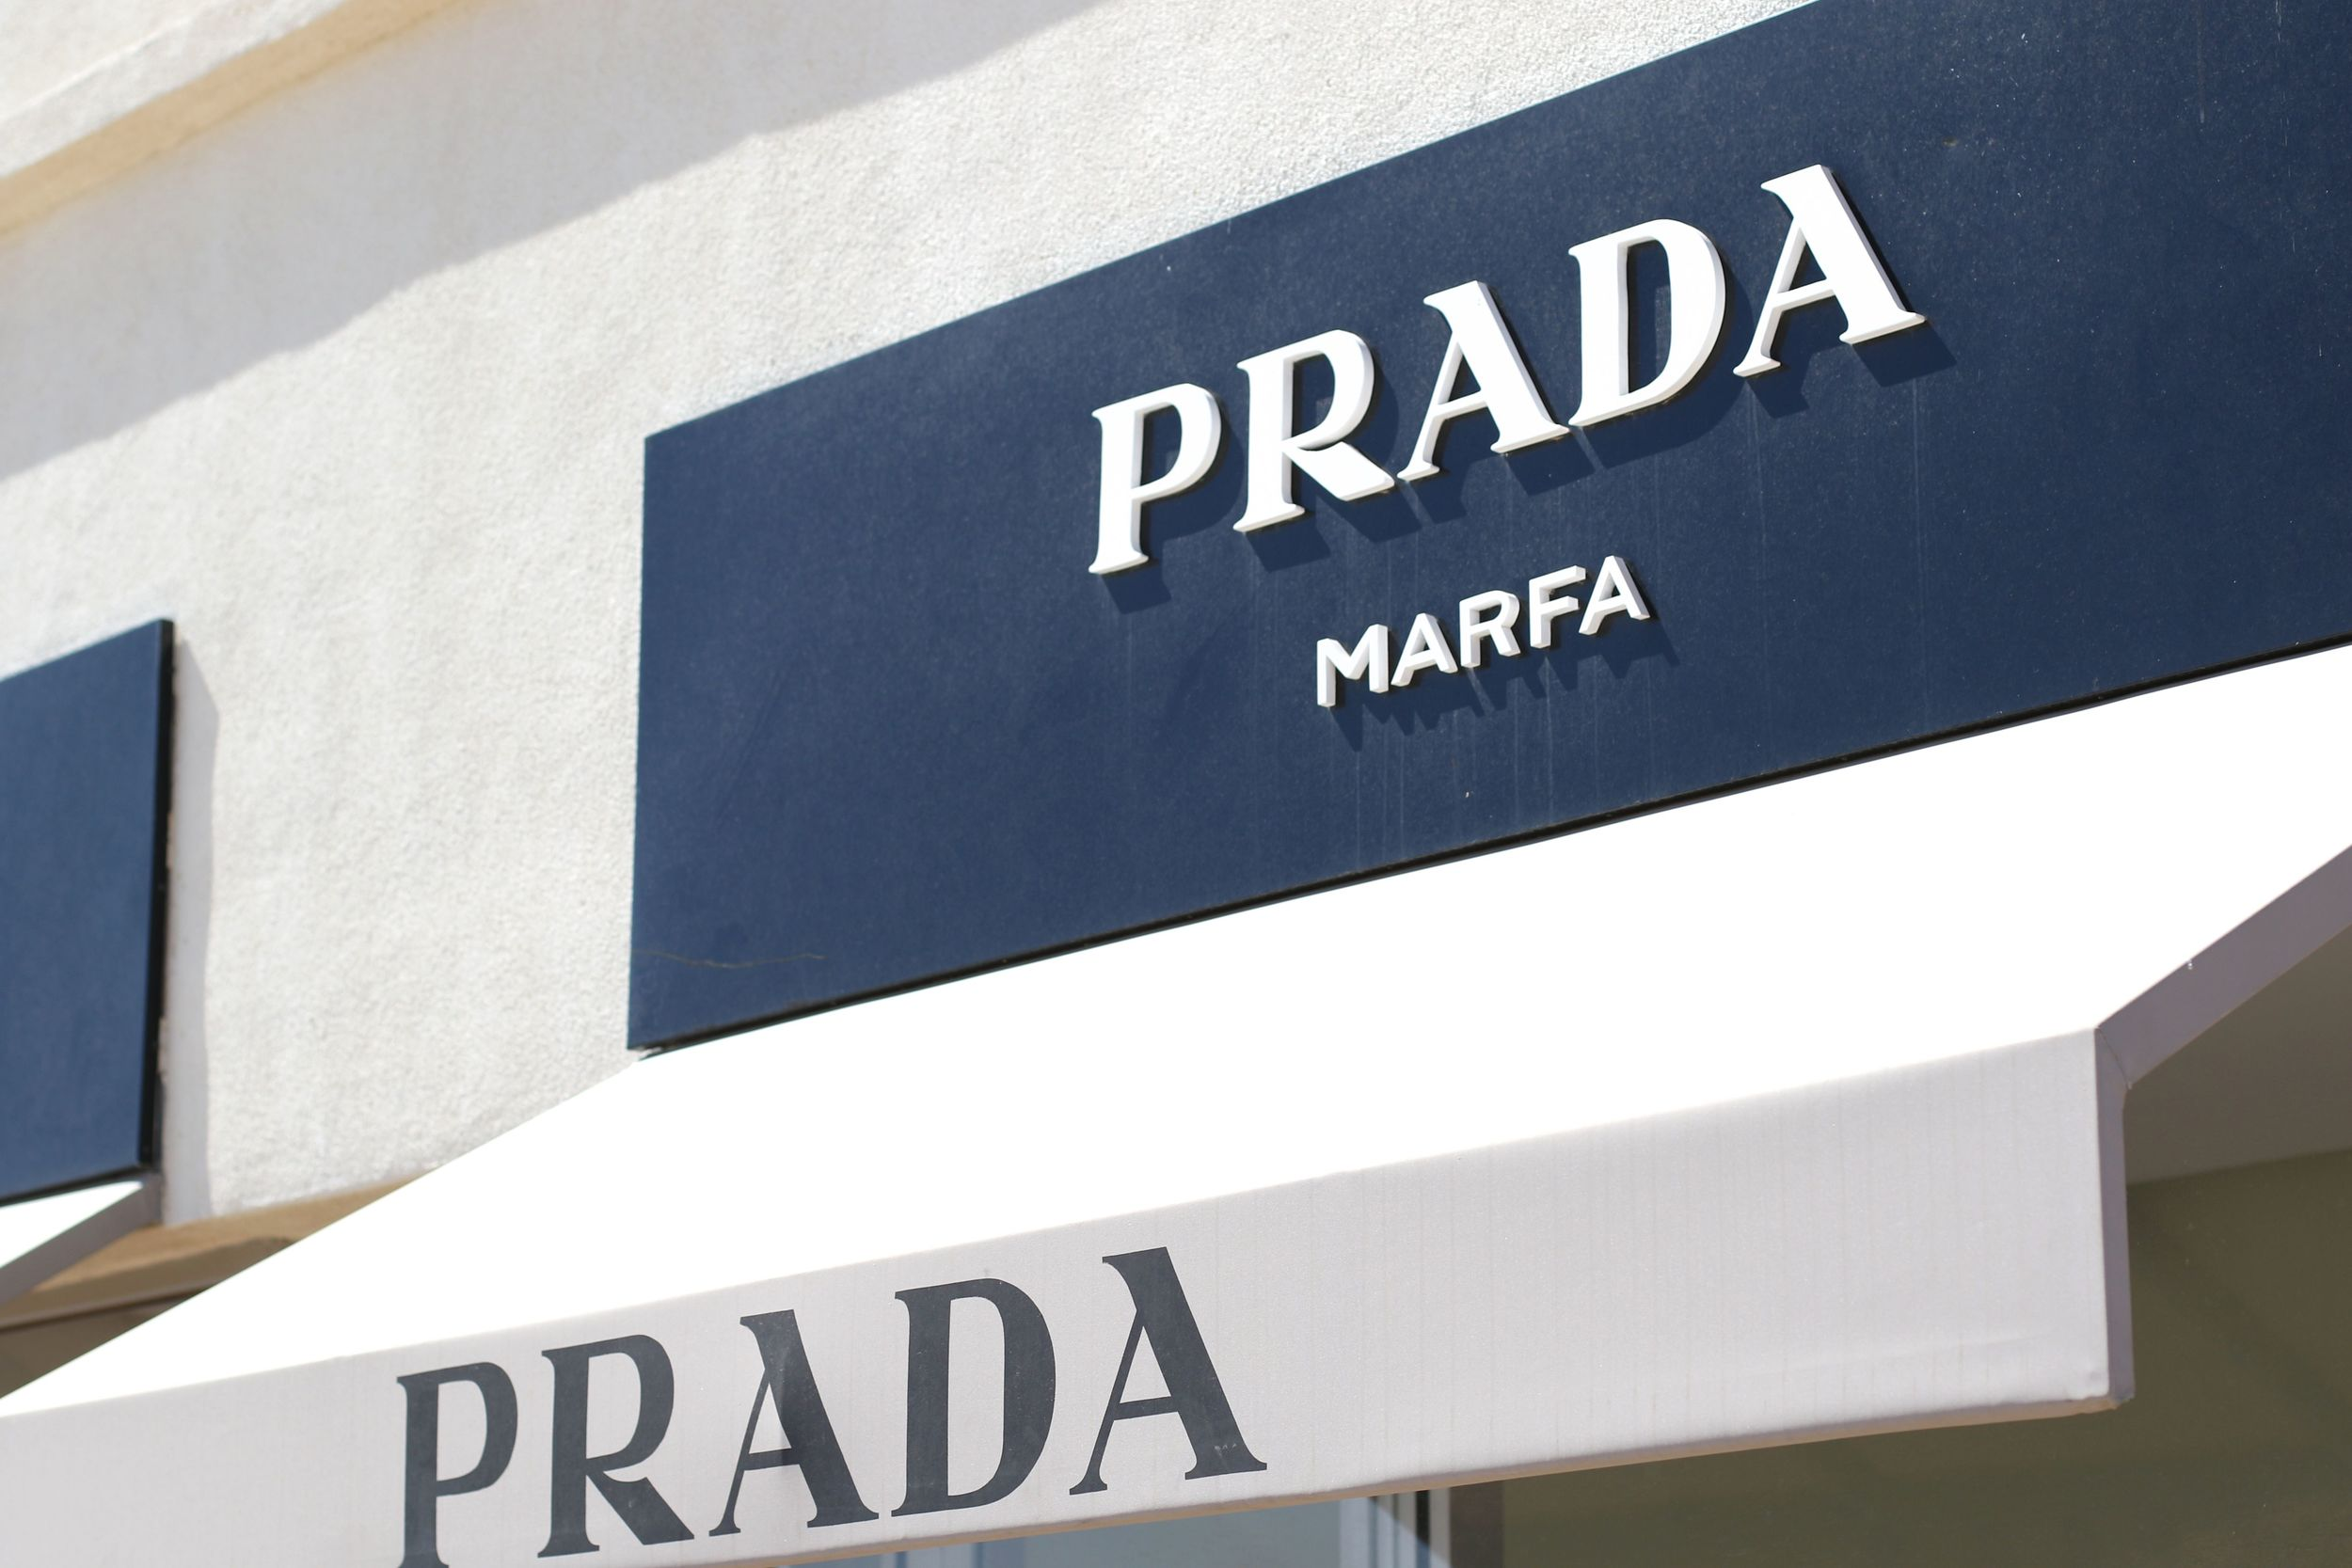 Prada Marfa Sign.jpg